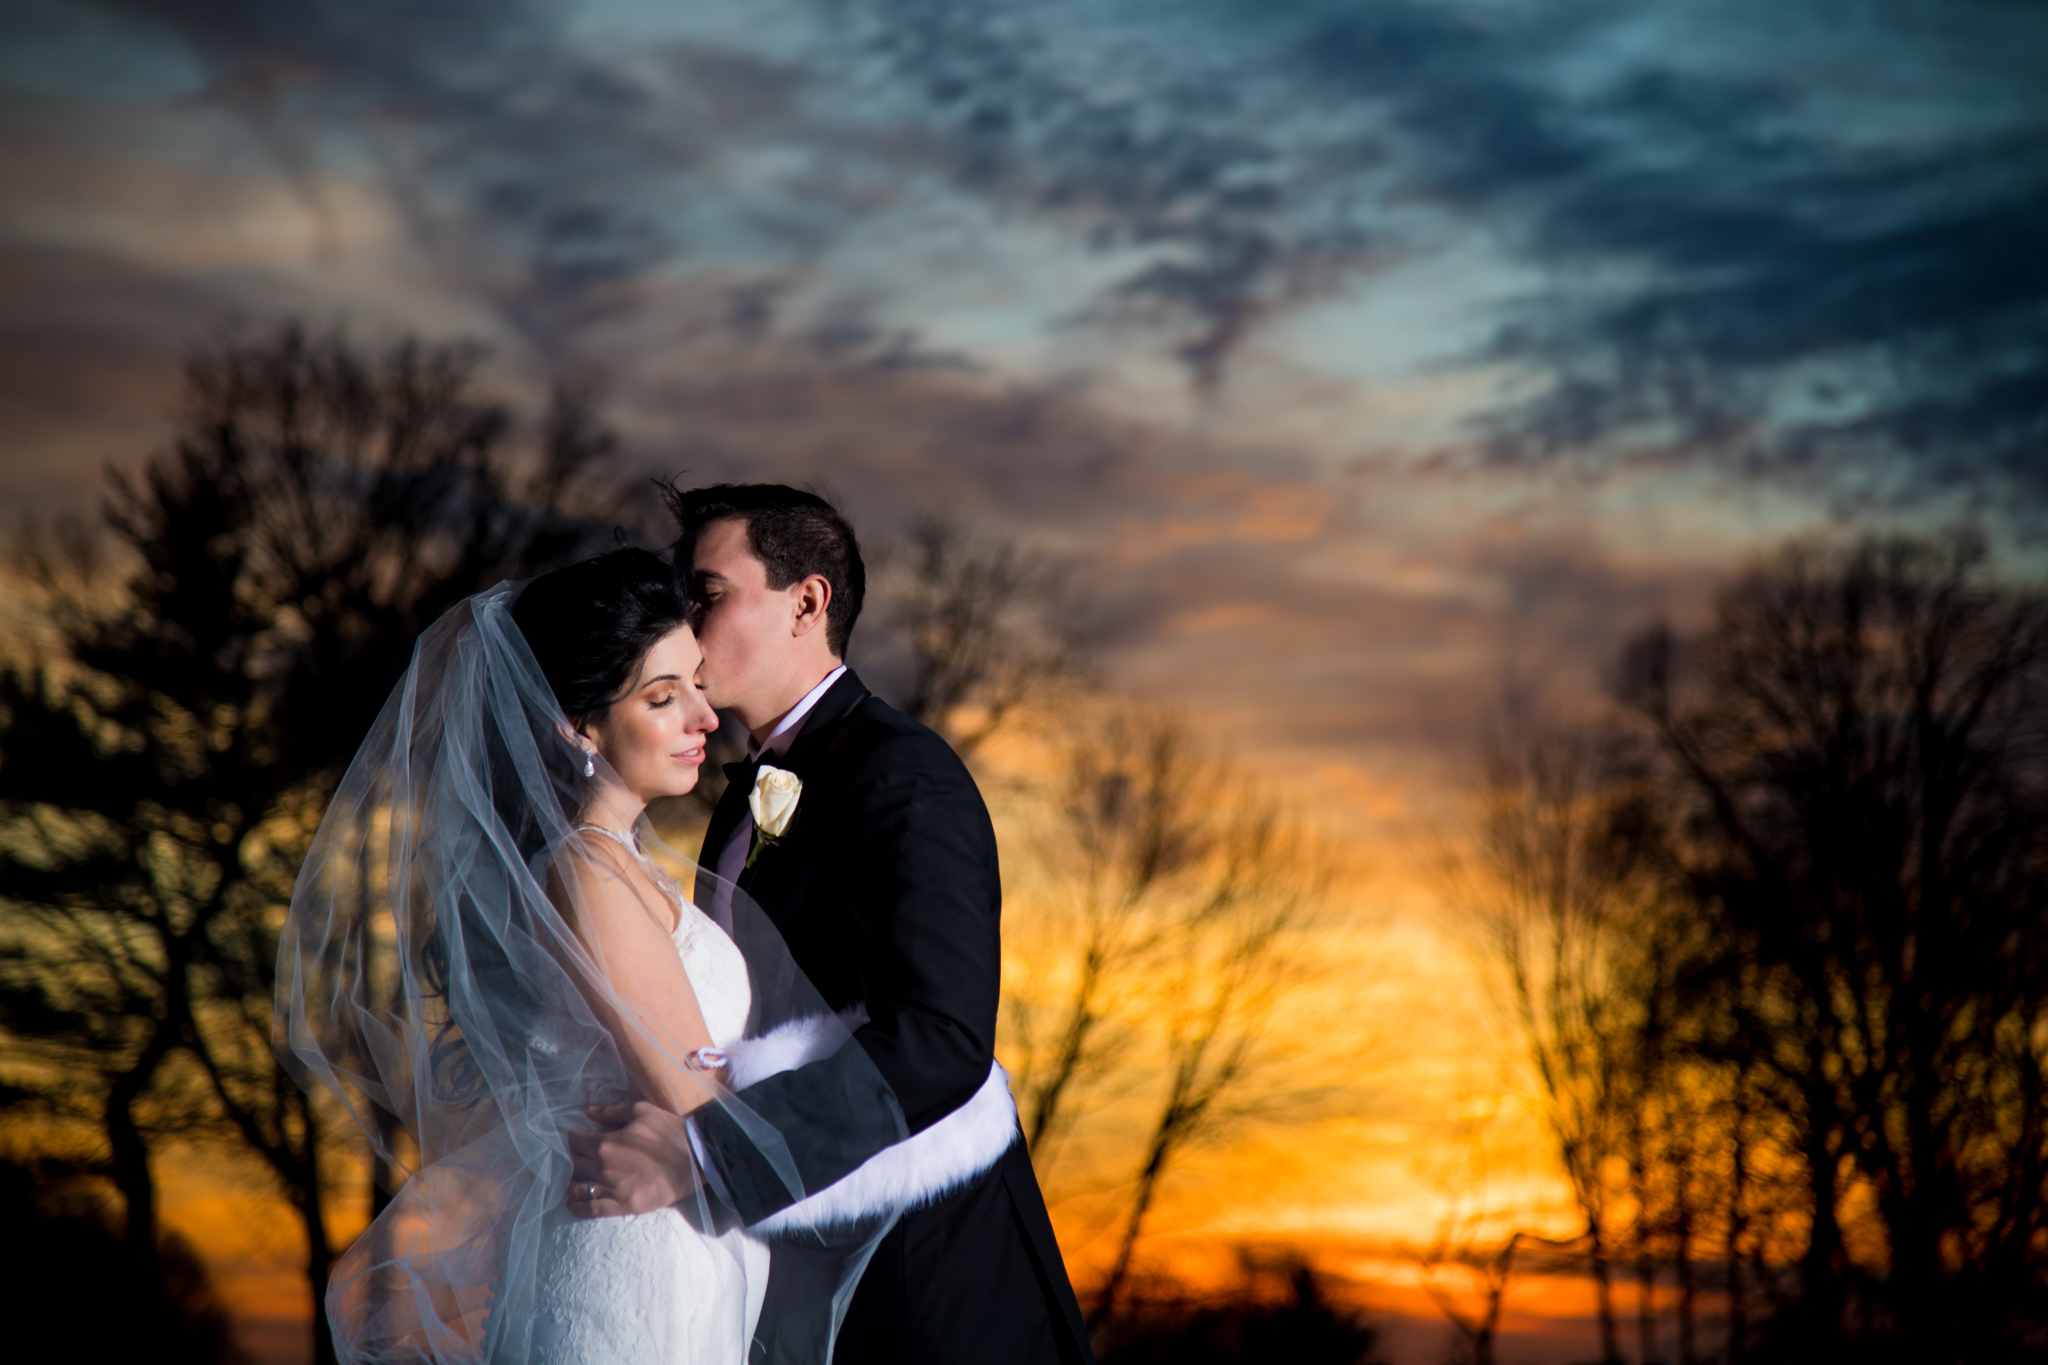 Bride and Groom relax during sunset at Village Club of Sands Point | Lotus Wedding Photography